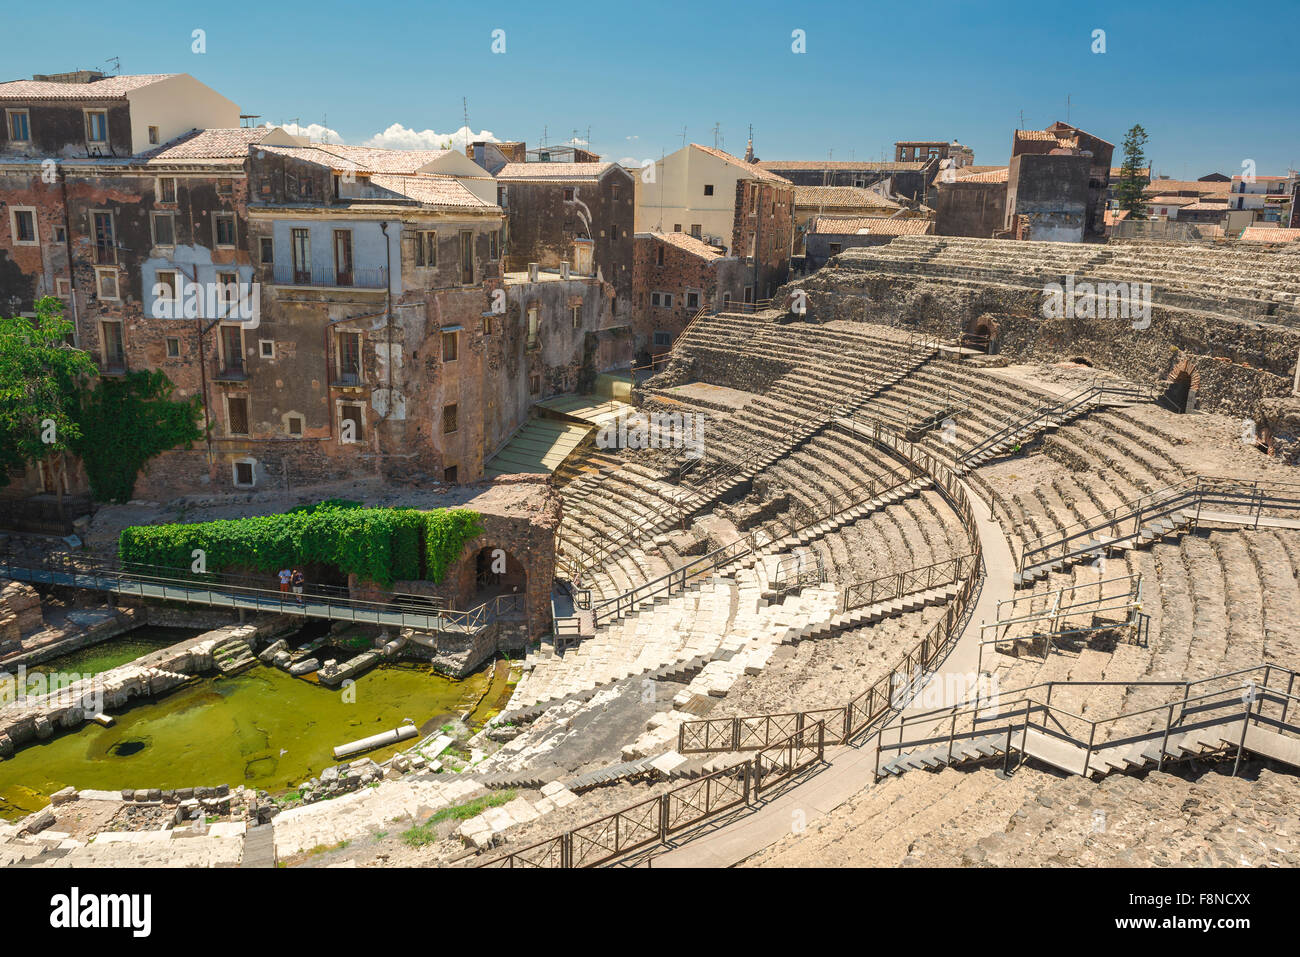 Catania roman theater, view of the ancient Roman theatre, the Teatro Romano, in the centre of the city of Catania, - Stock Image